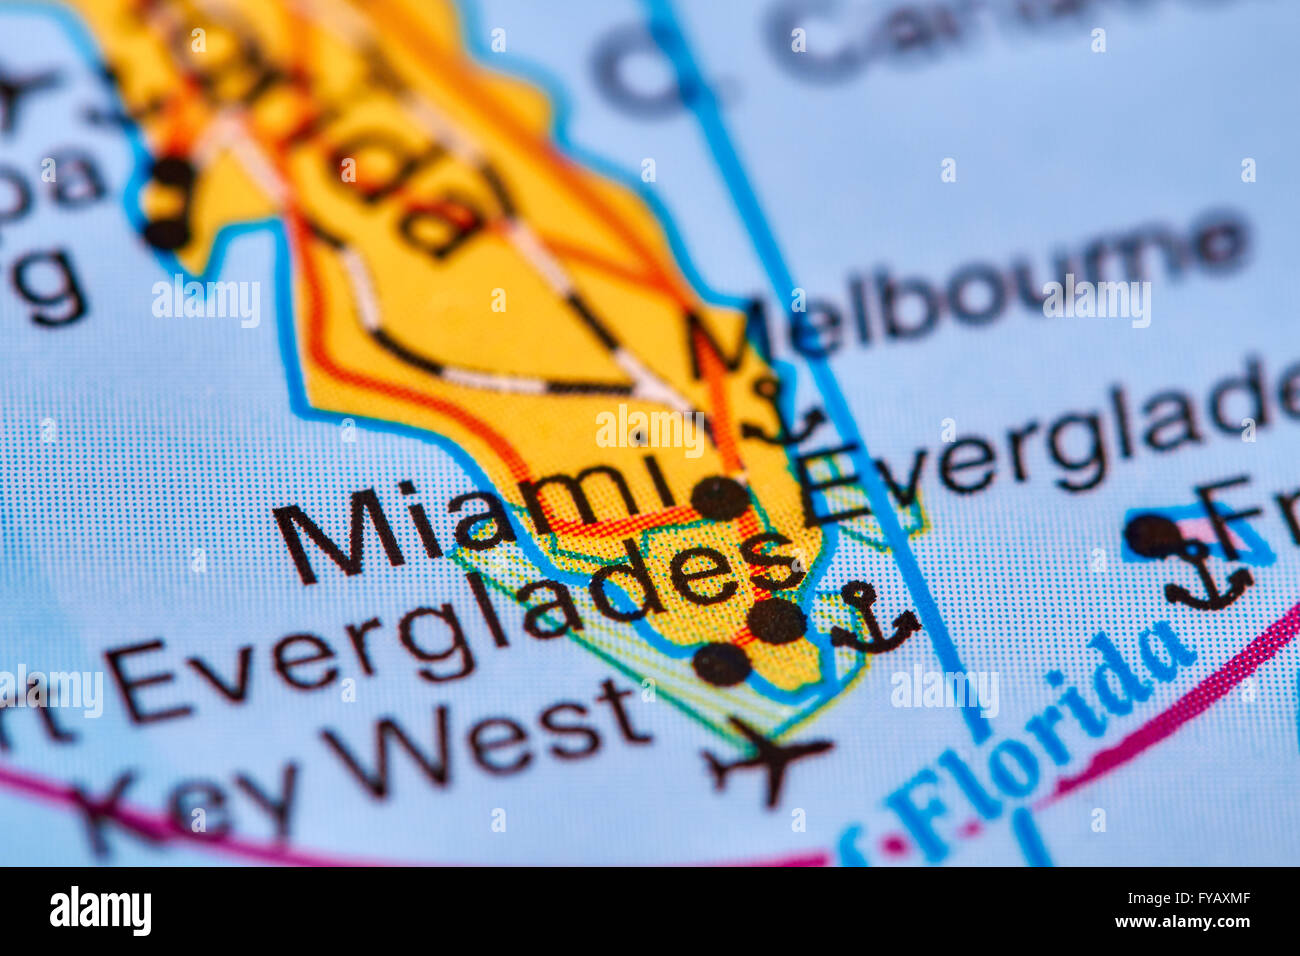 Miami City in USA on the World Map Stock Photo 102888031 Alamy